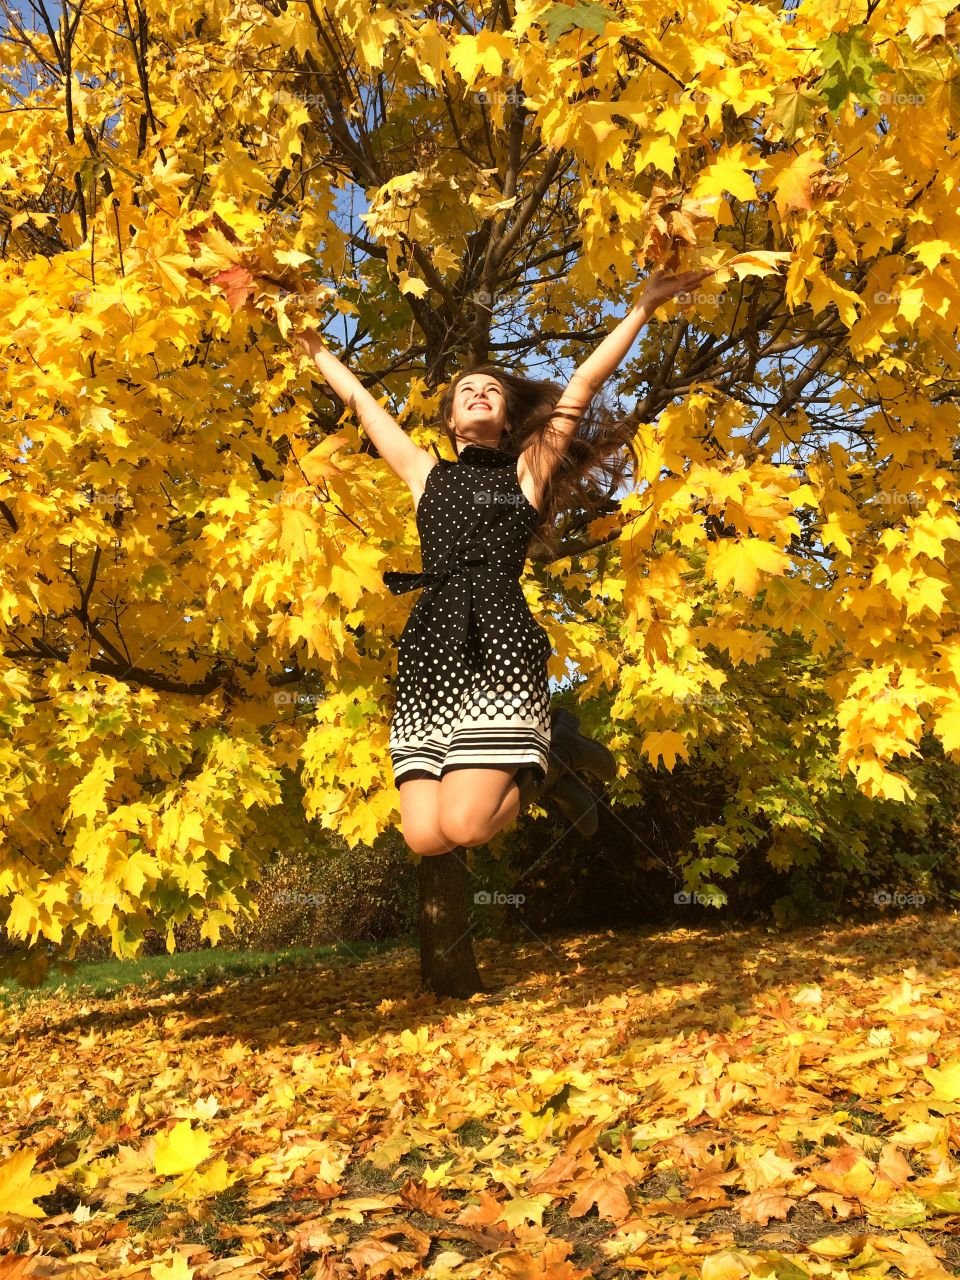 Yellow happiness . Jumping in the autumn yellow leaves